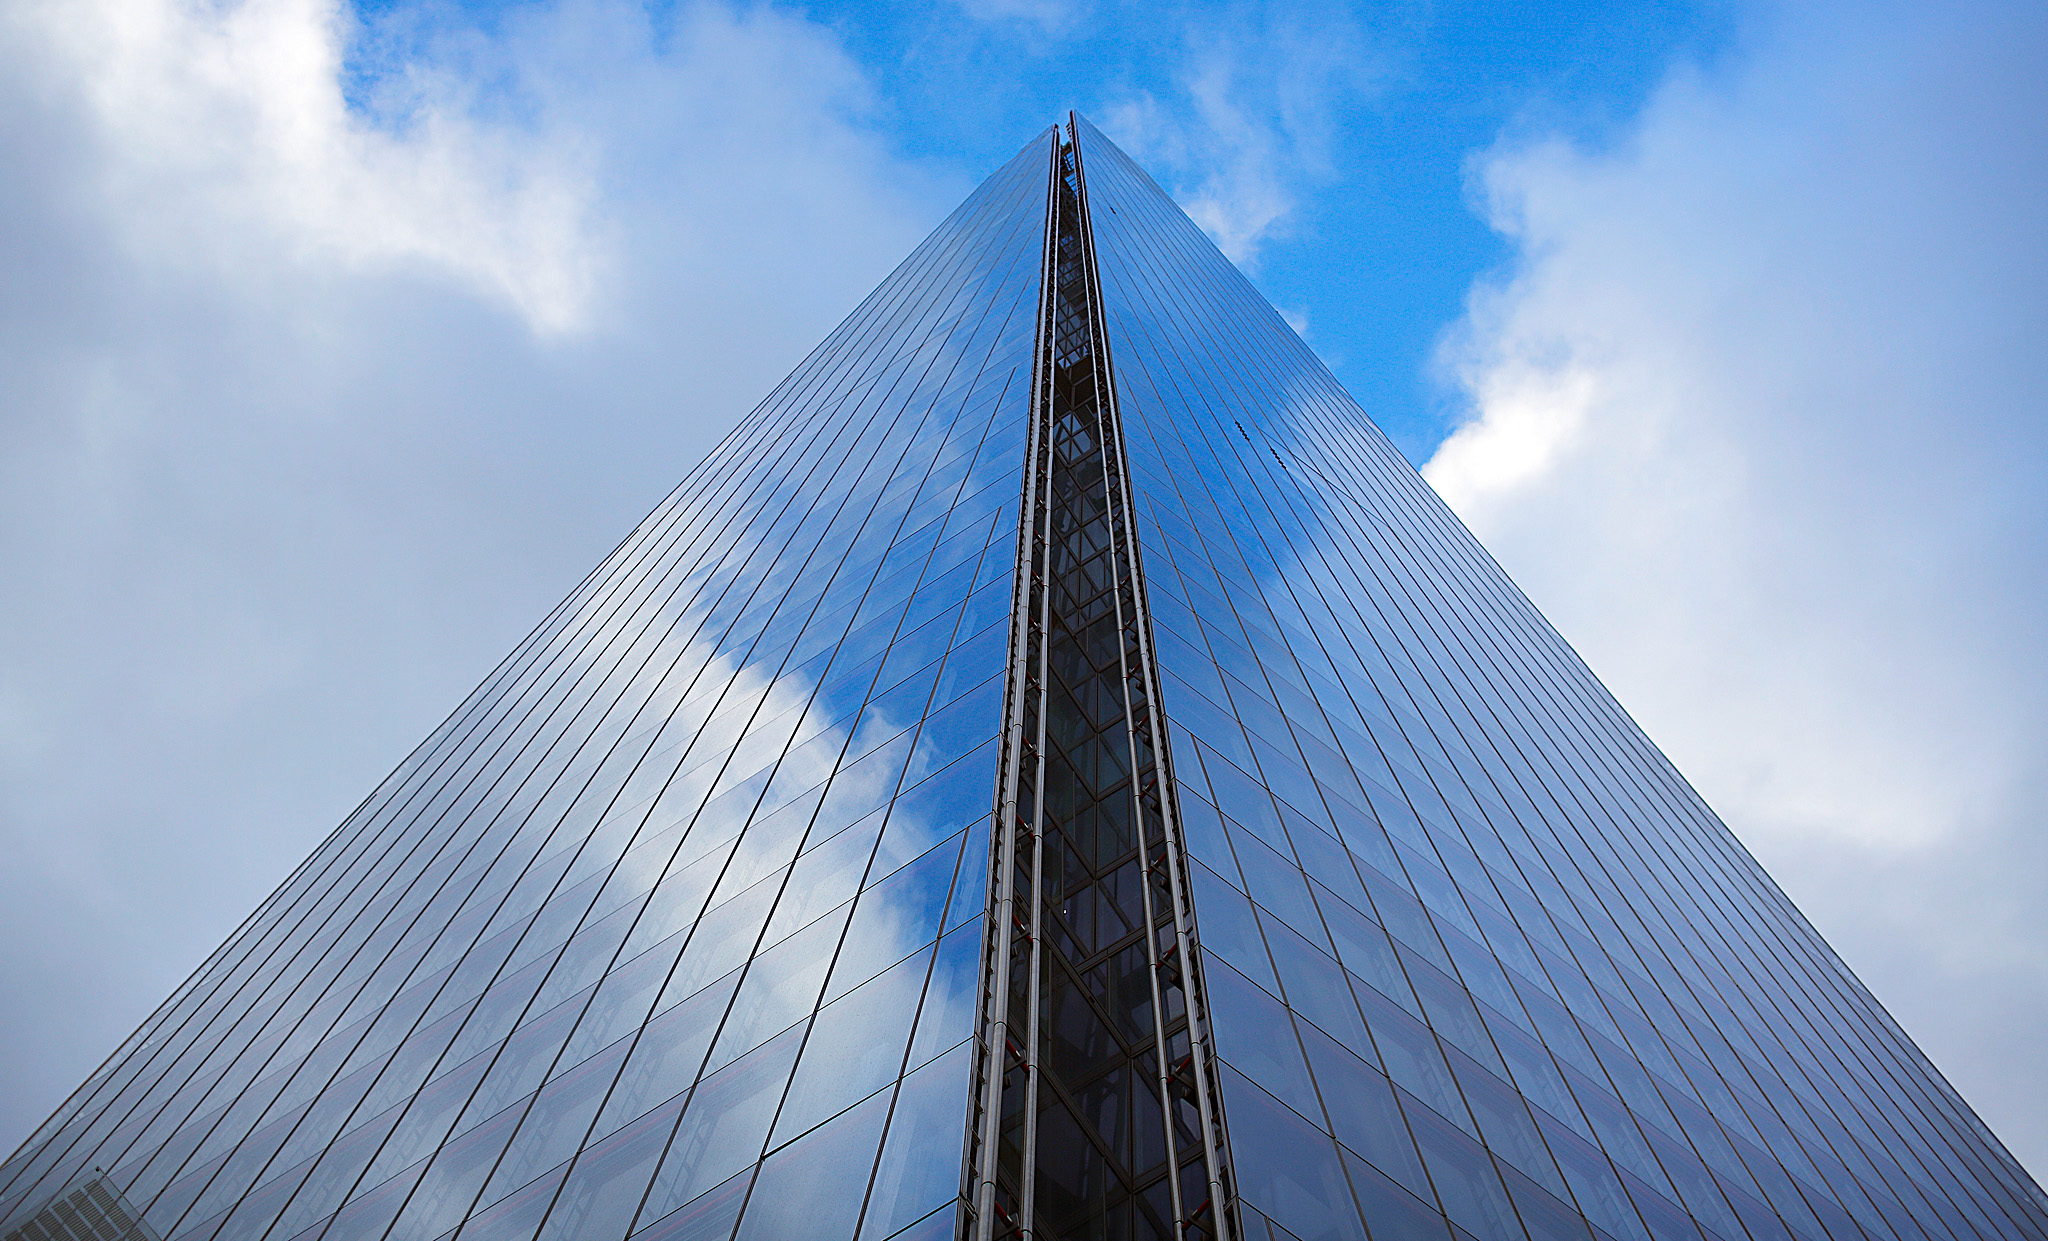 The Shard building.